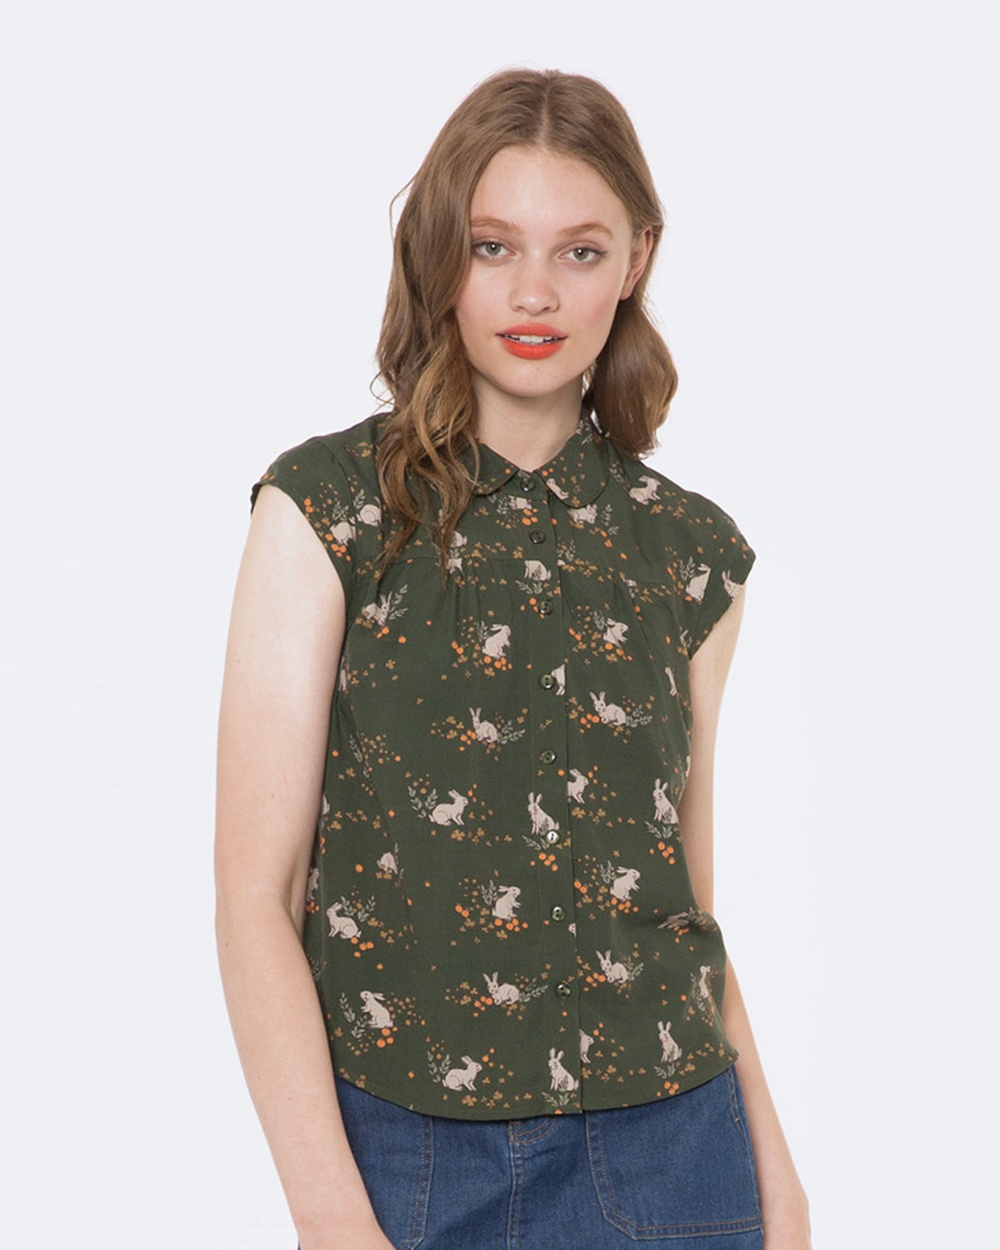 Princess Highway Garden Rabbit Blouse Tops Green Garden Rabbit Blouse